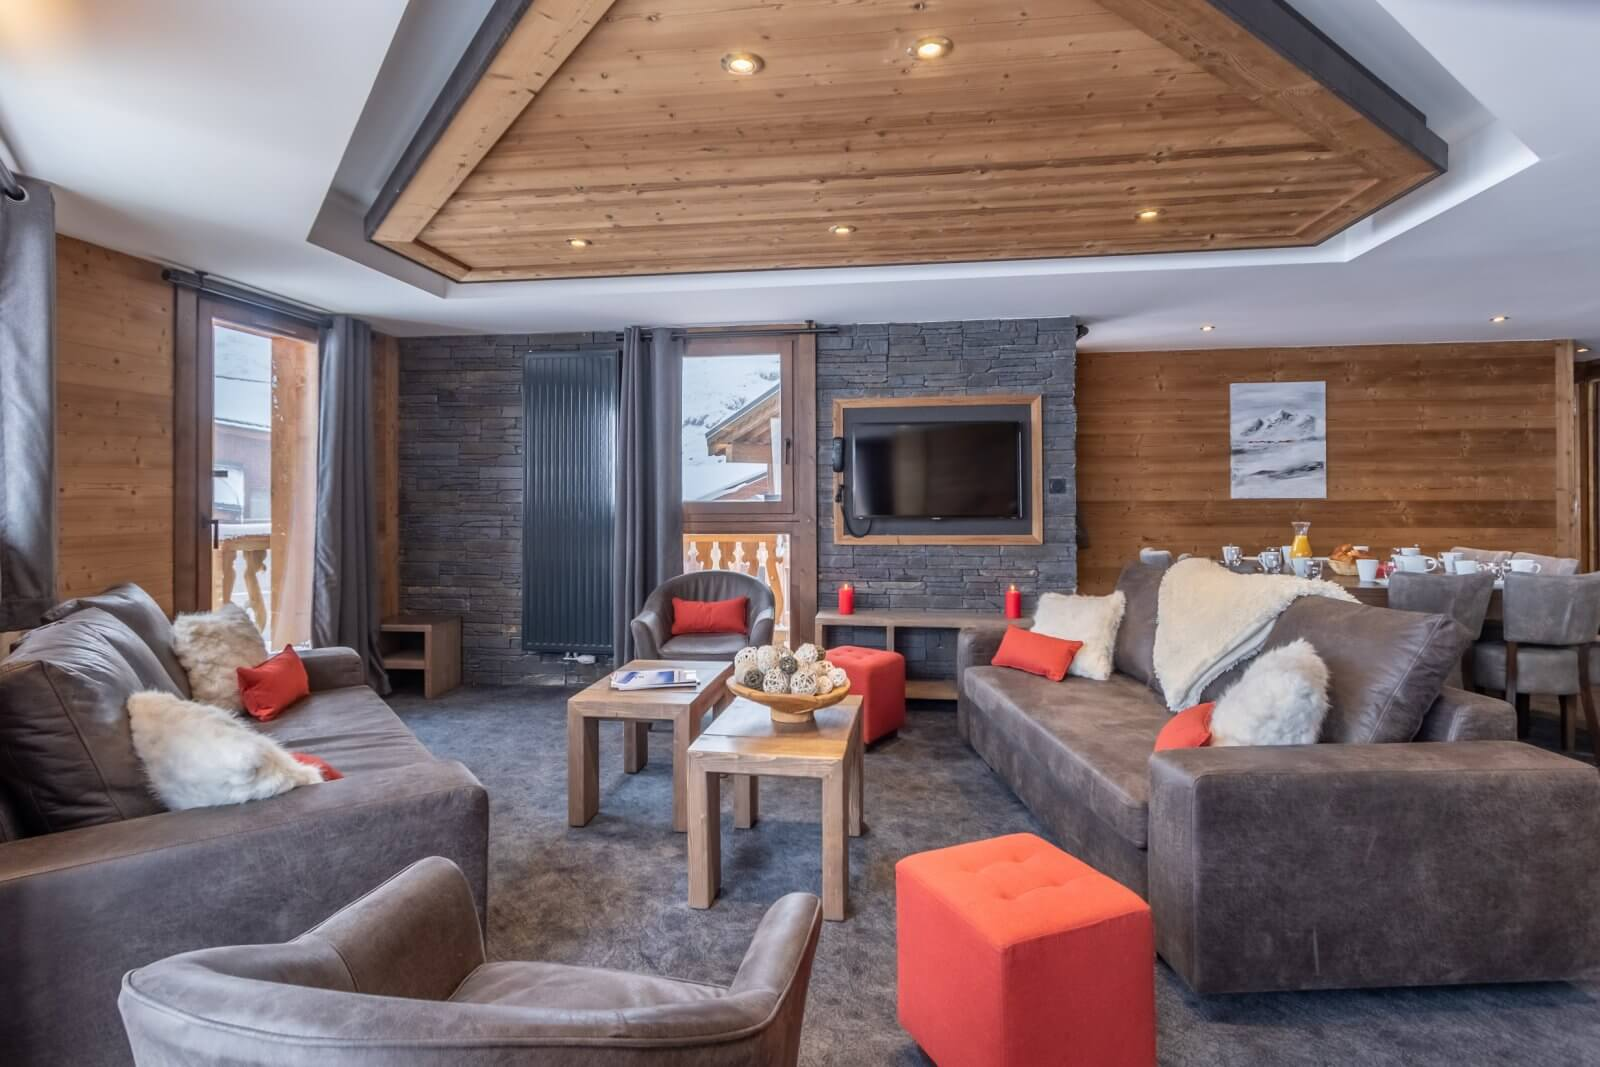 An image of the 10 person duplex apartment at Chalet Altitude Val Thorens